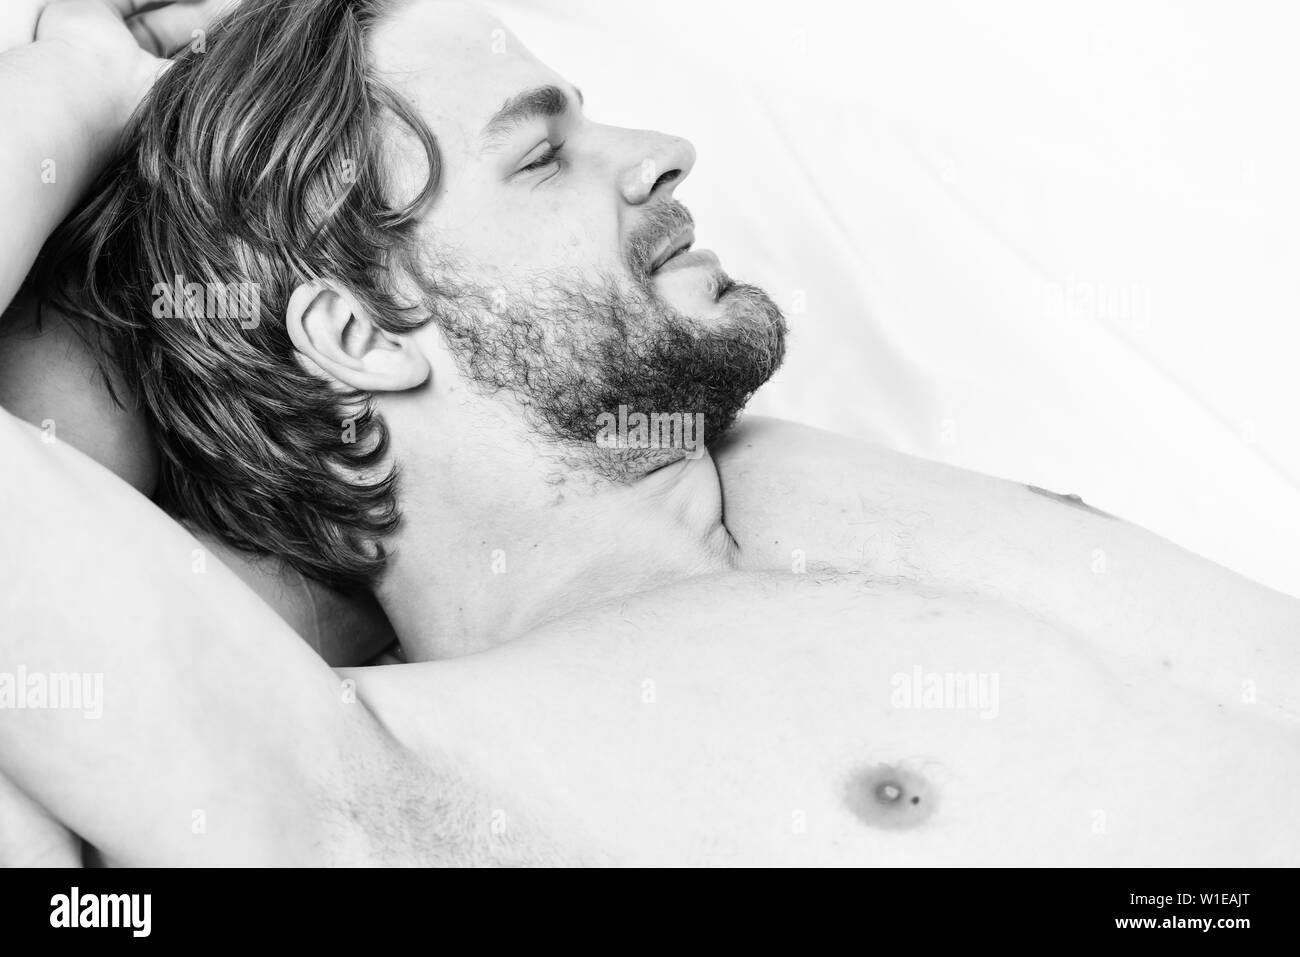 A young man waking up in bed and stretching his arms. Close up of feet in a bed under white blanket. Wake up in the morning - Stock Image